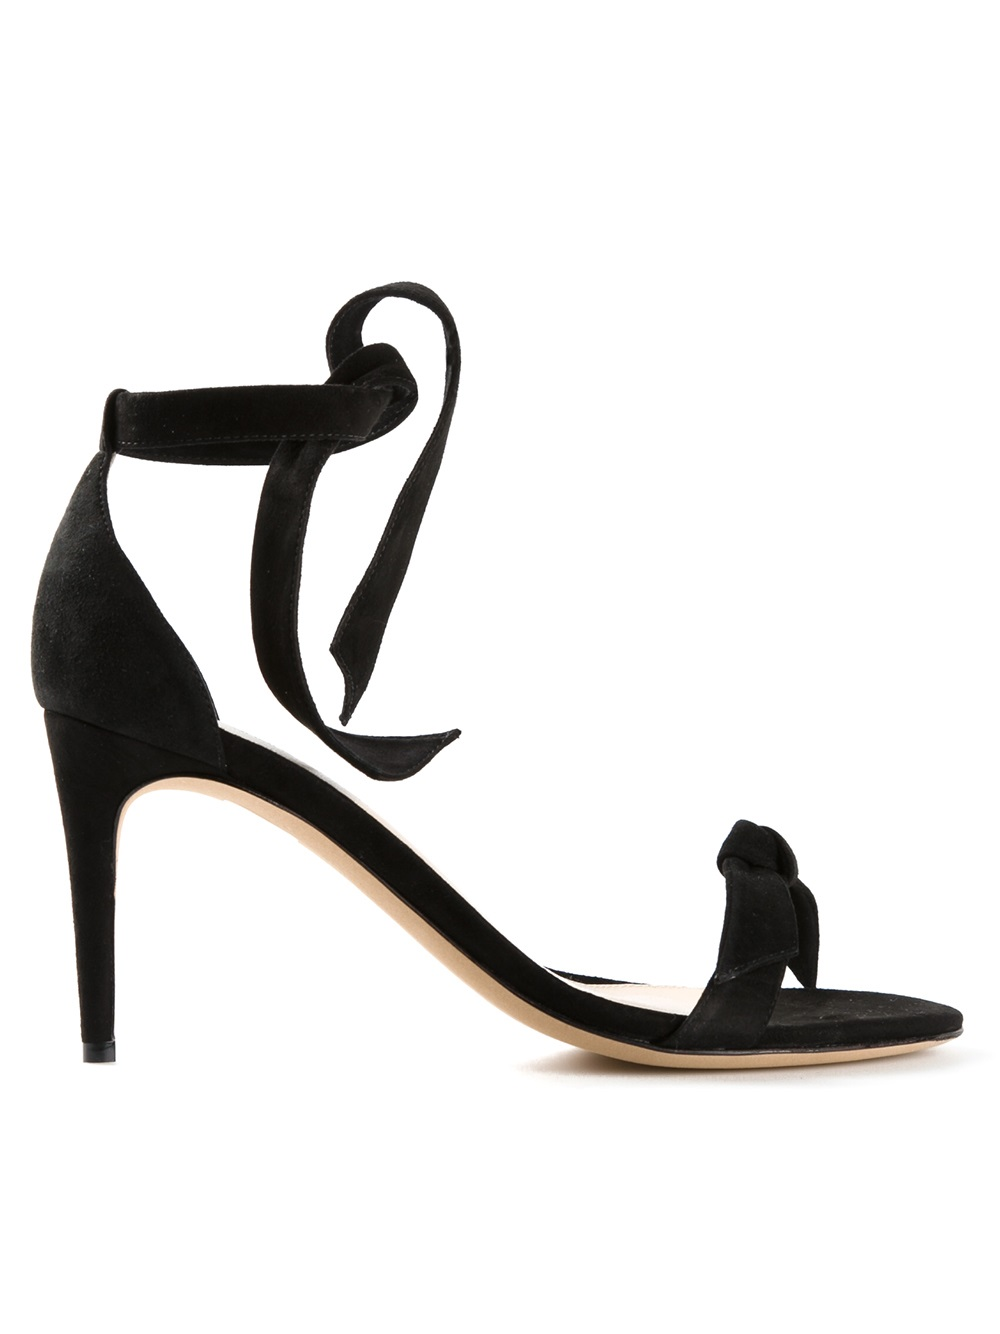 Alexandre Birman Knotted Sandal - The Webster - Farfetch.com